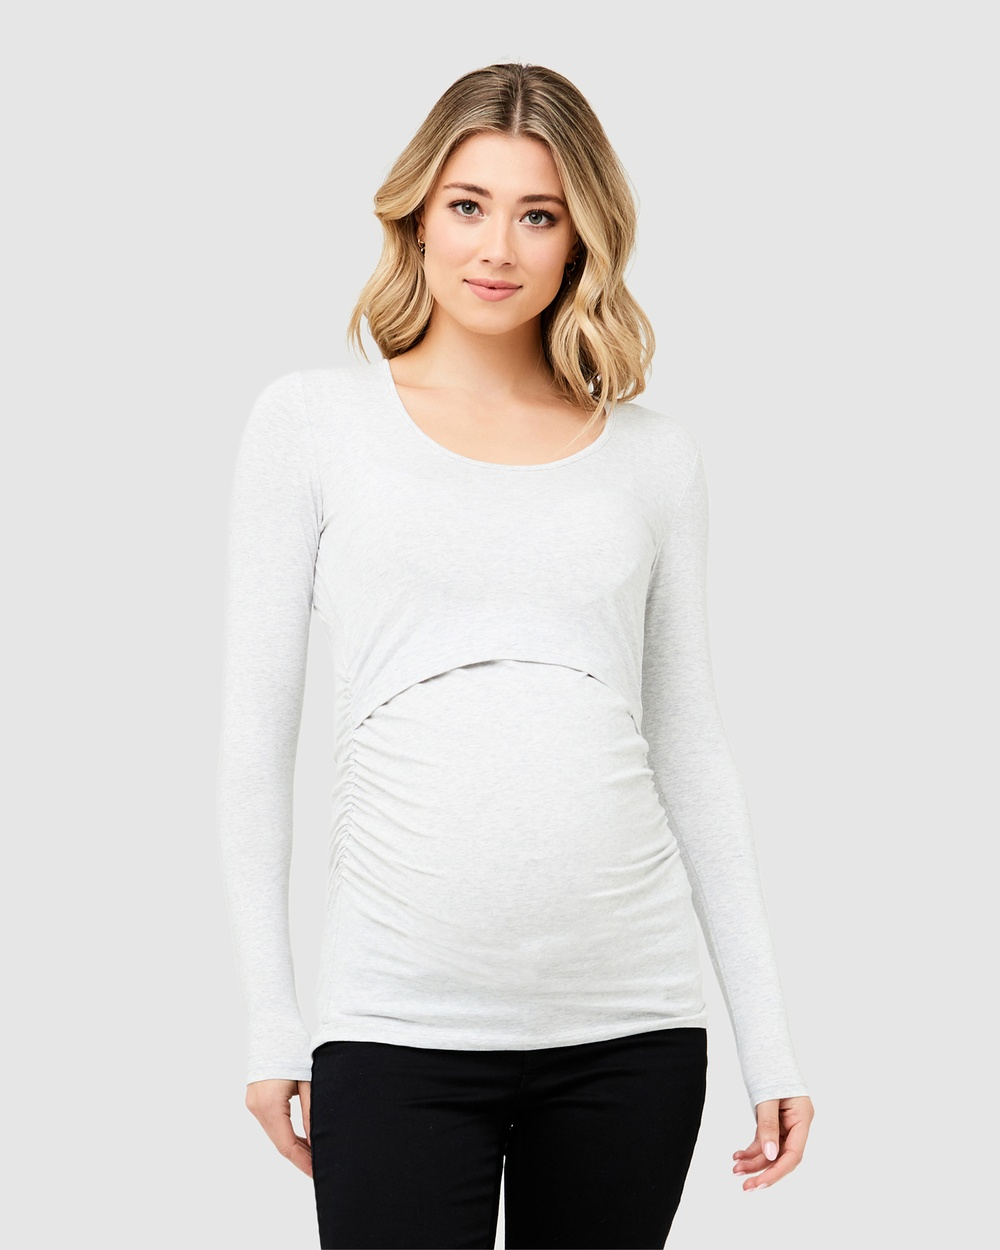 Ripe Maternity Ali Up Down Nursing Long Sleeve Tee Tops Silver Ali Up-Down Nursing Long Sleeve Tee